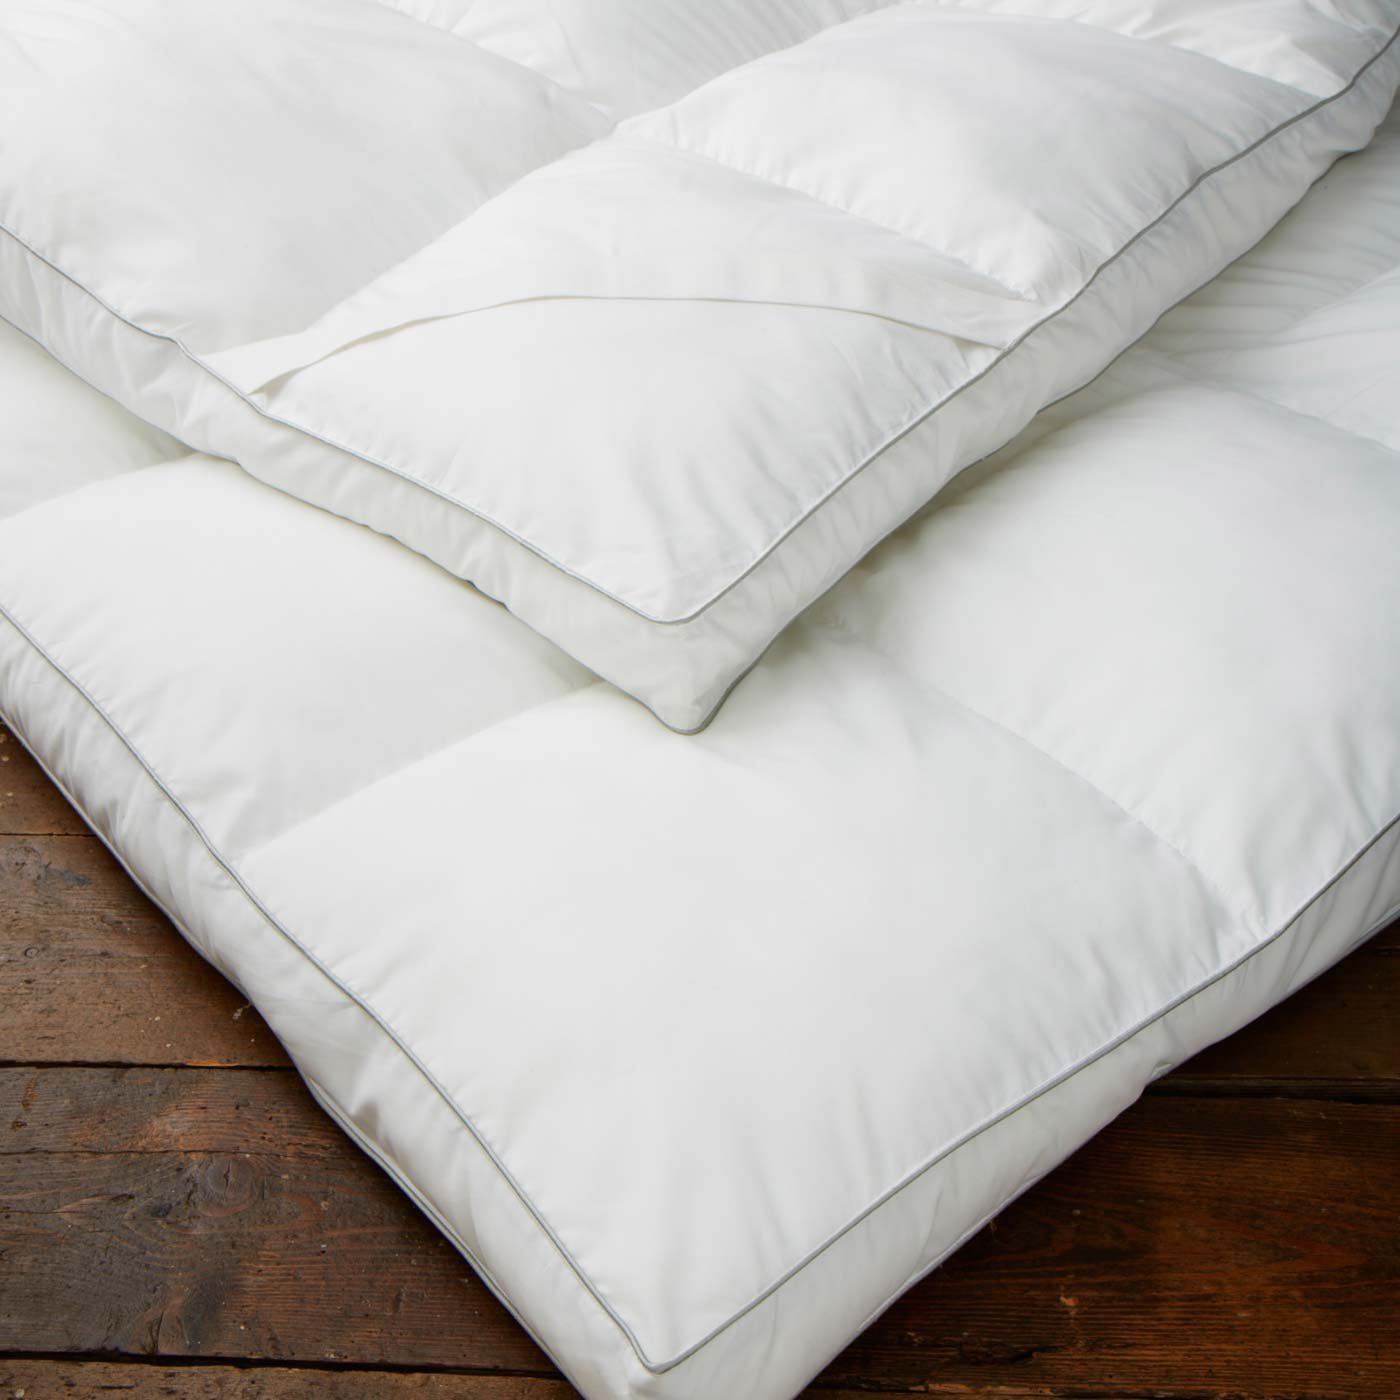 review mattresses size latex natural mattress best bed for king bedroom your sleep with science